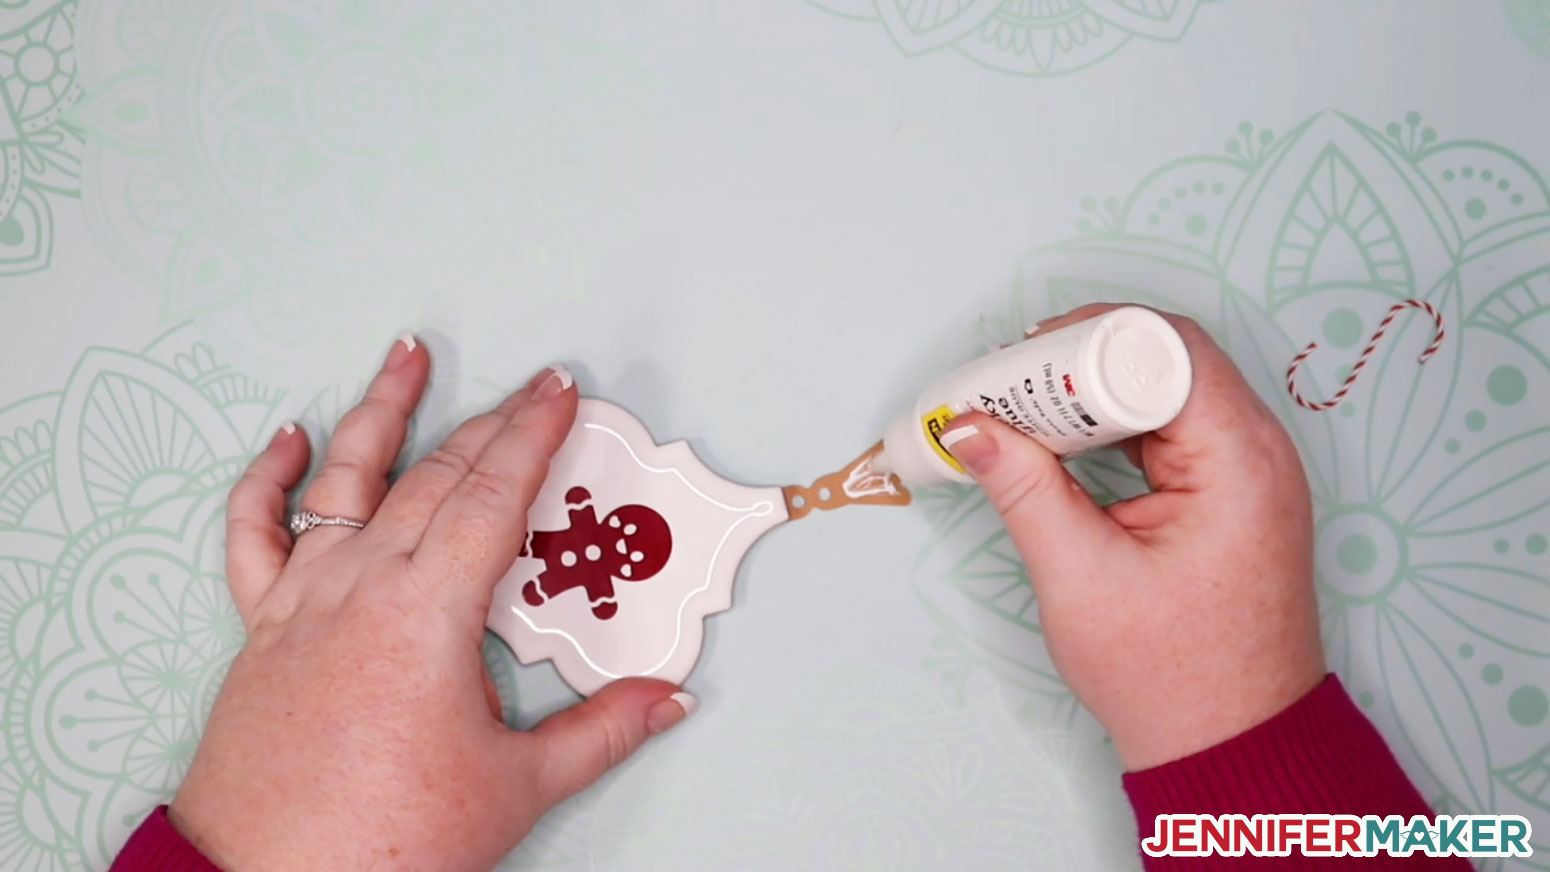 Applying glue to the top of the ornament backing